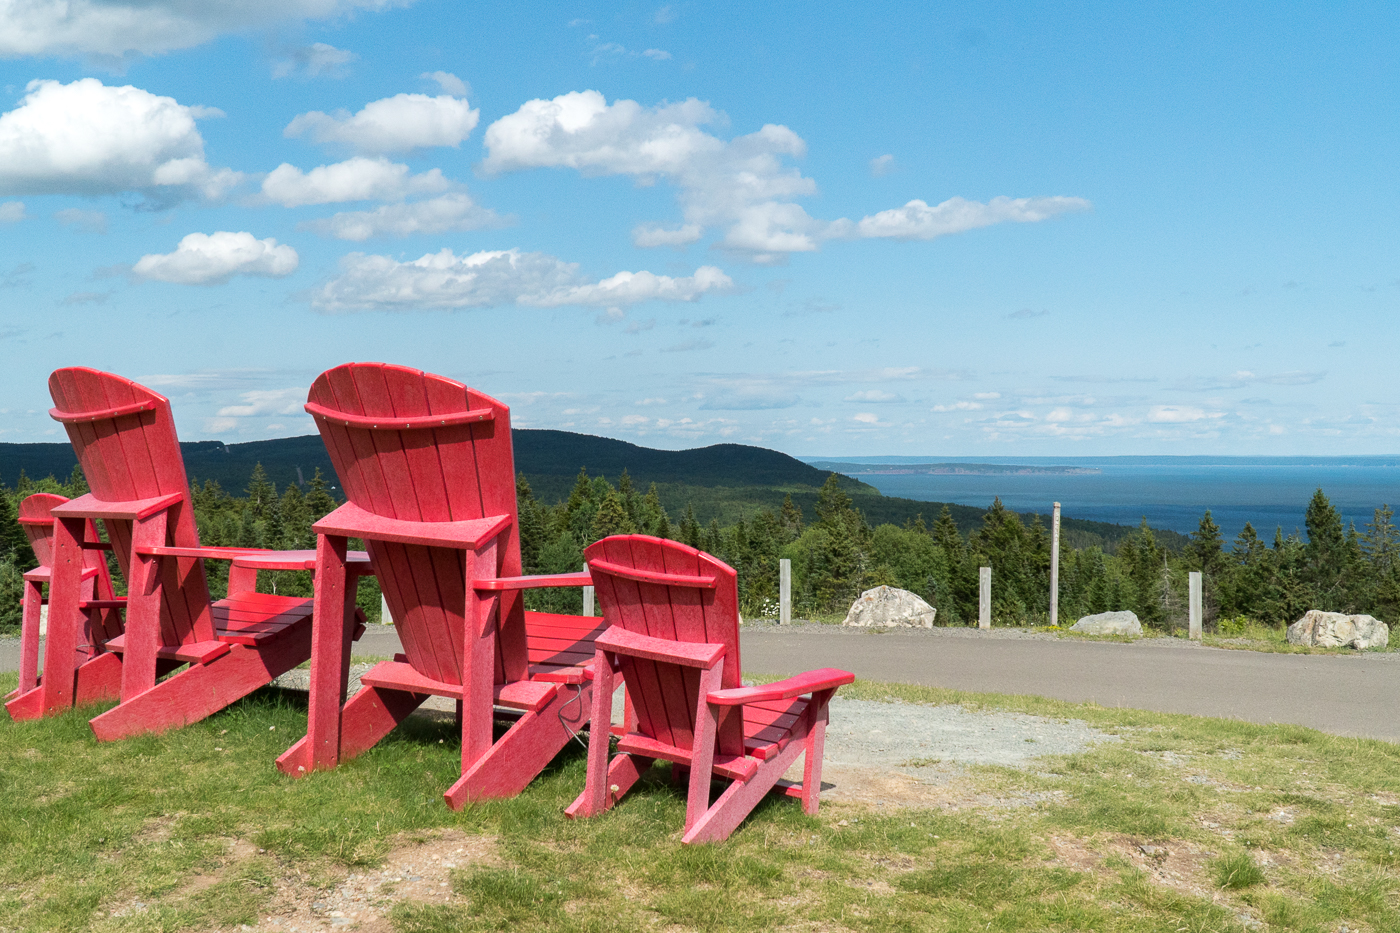 Chaises rouges au parc national Fundy à Alma, Nouveau-Brunswick